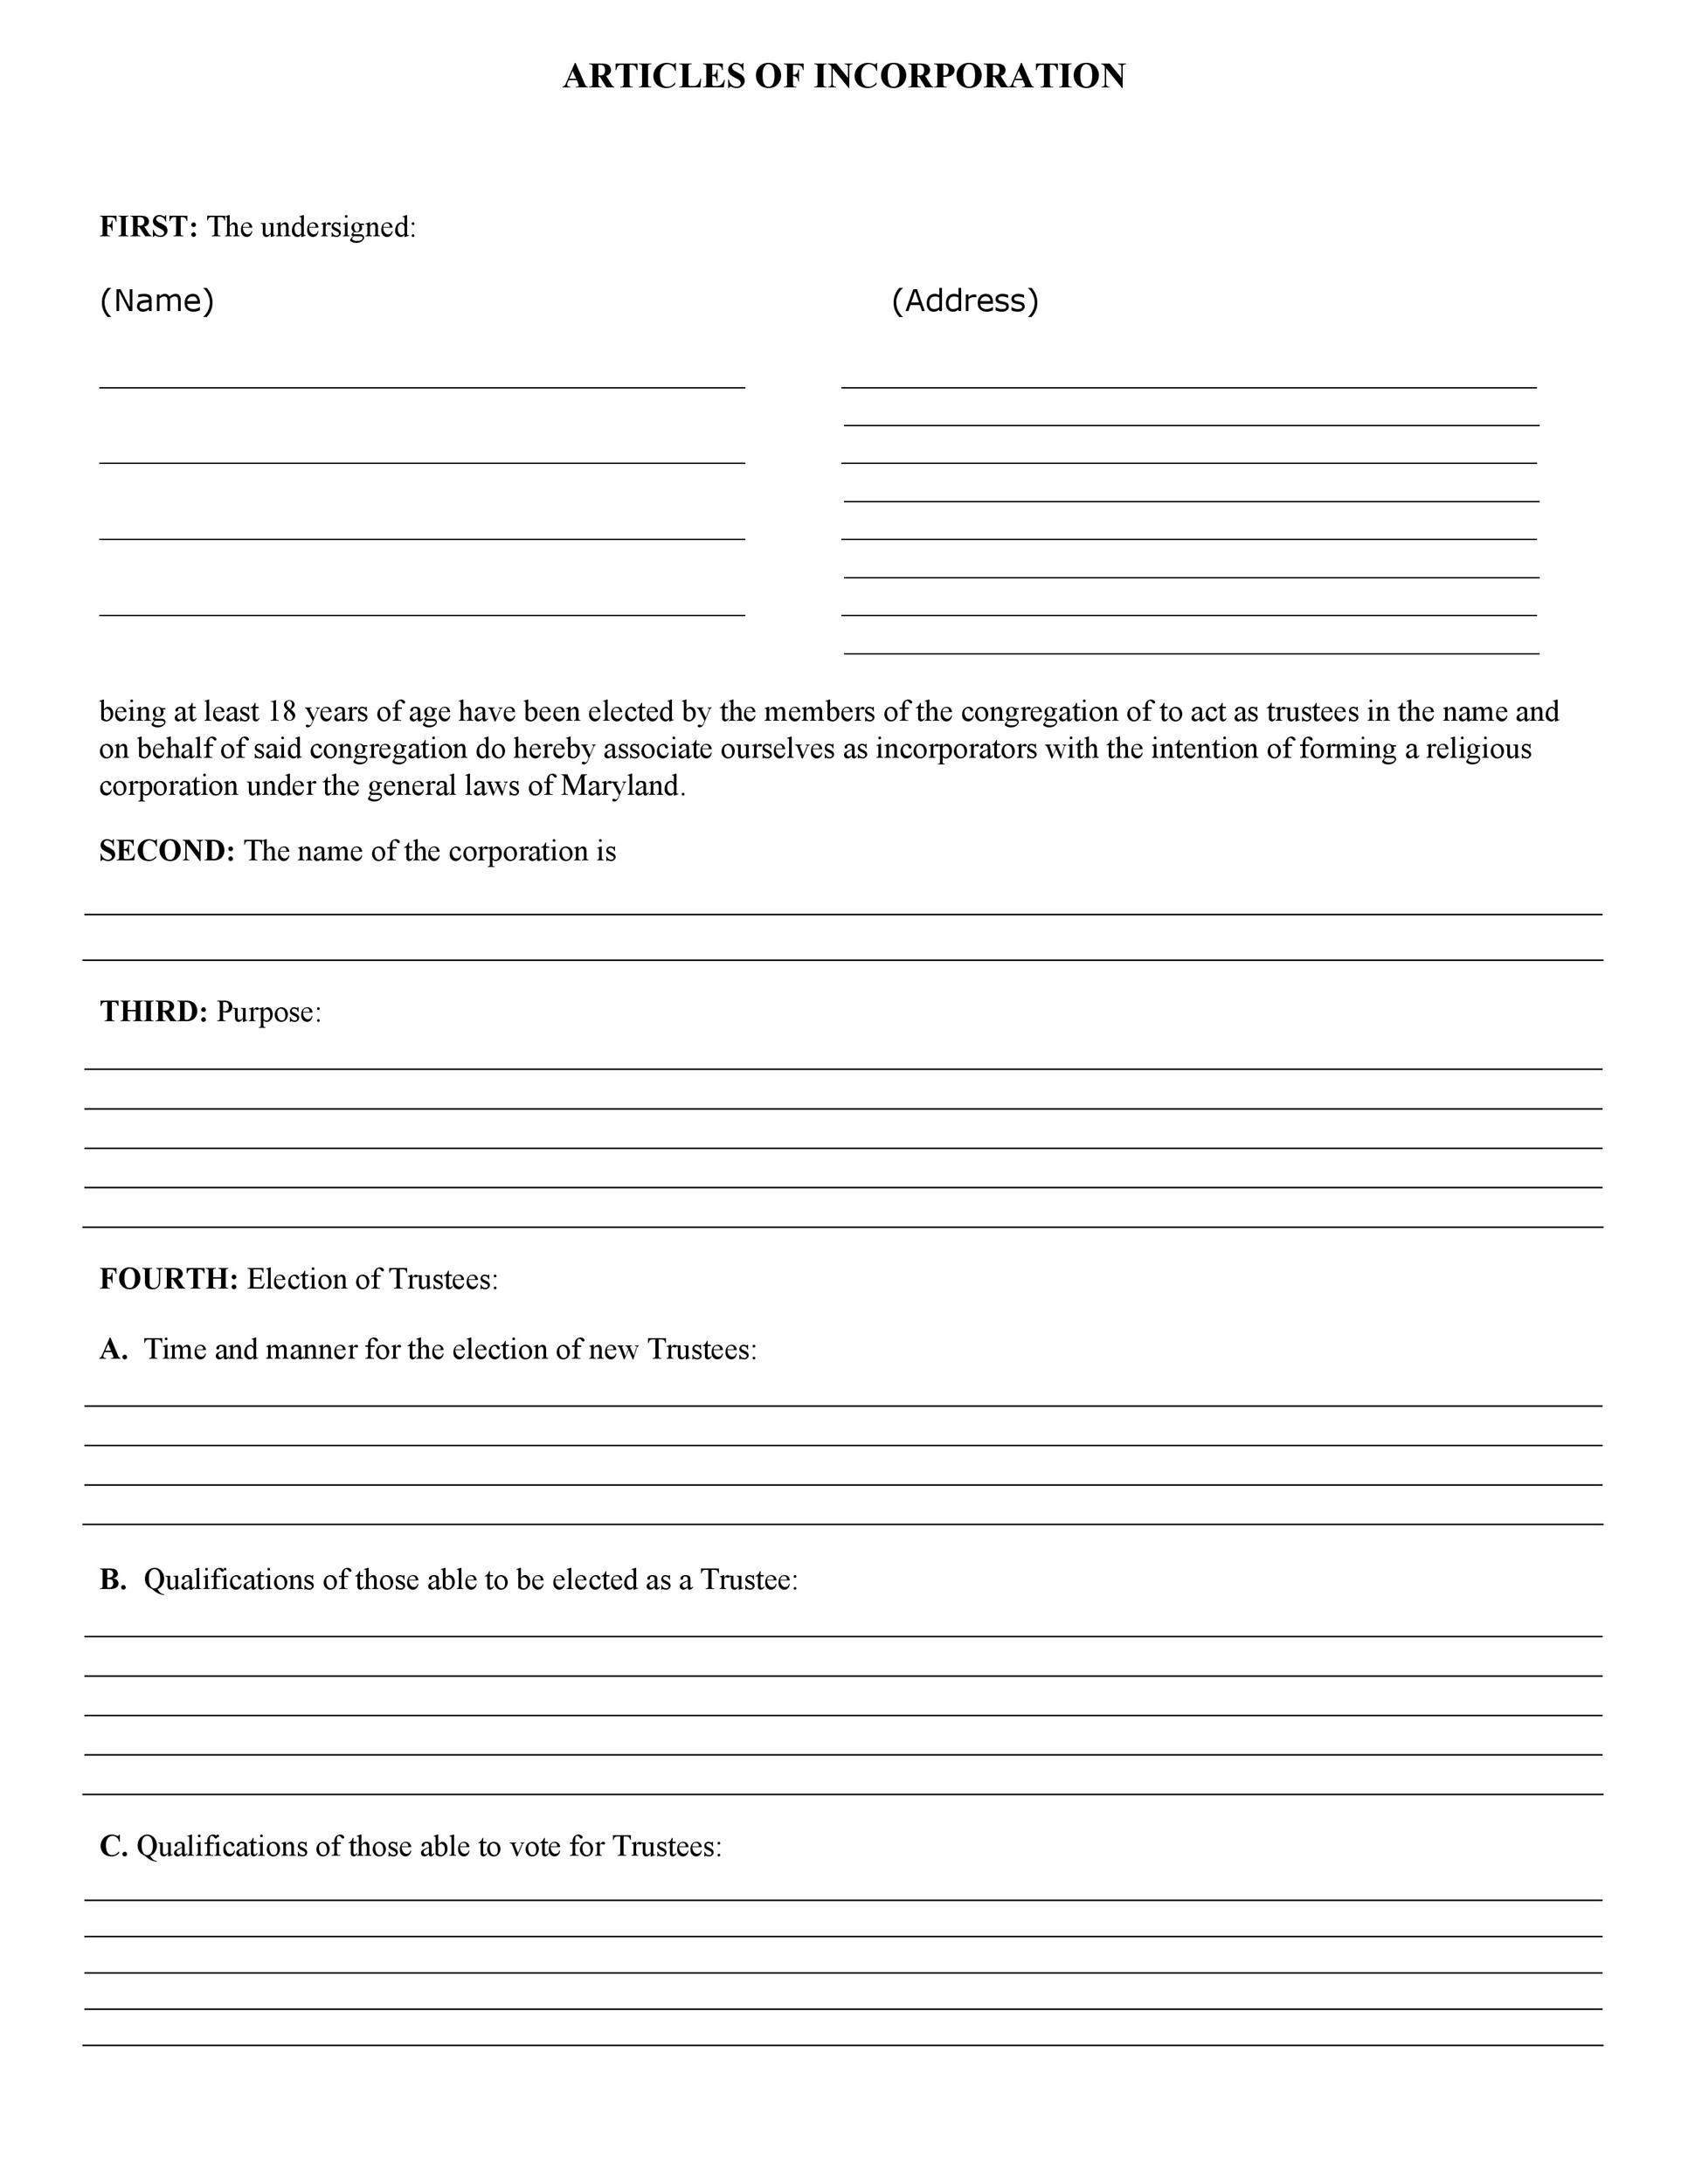 Free articles of incorporation template 33